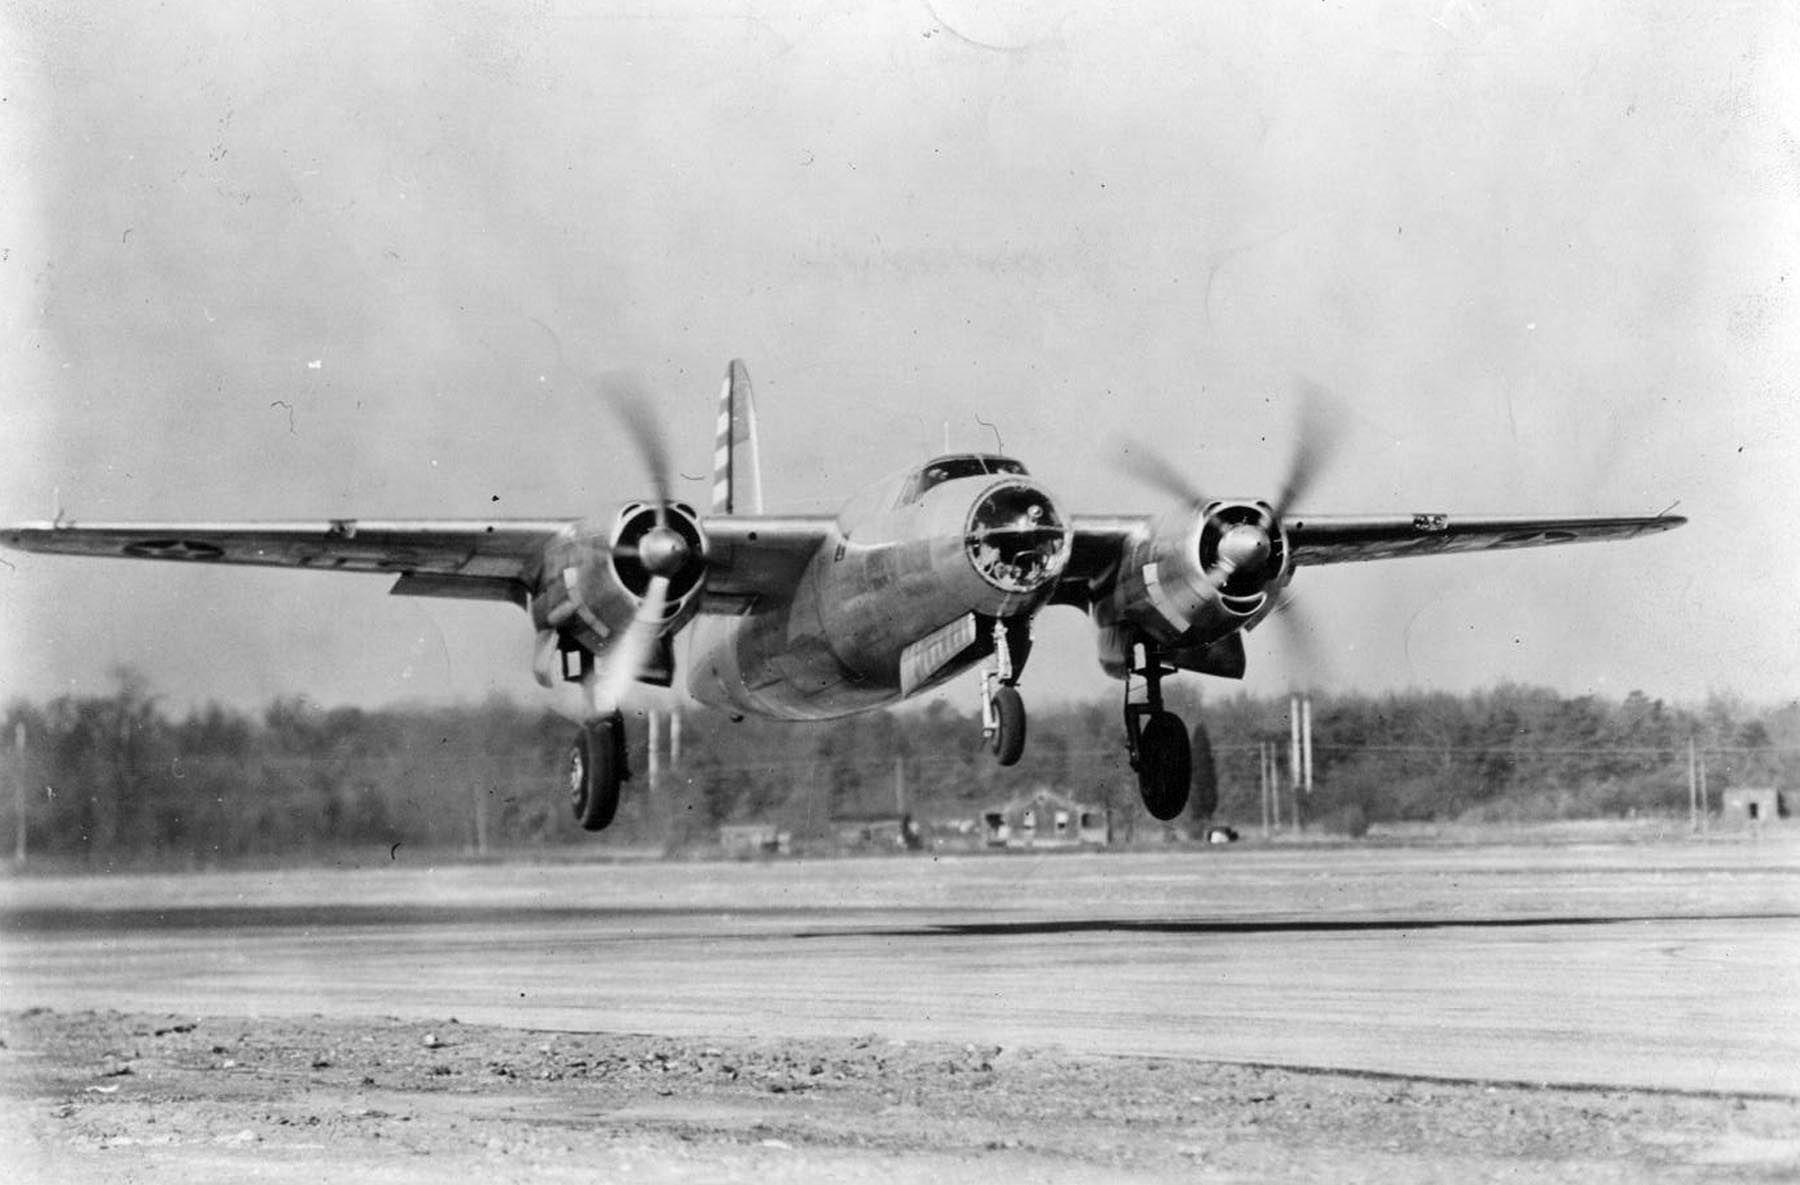 USAAF 40 1361 B 26 Marauder retained on bailment by factory for modifications 28 Nov 1940 05